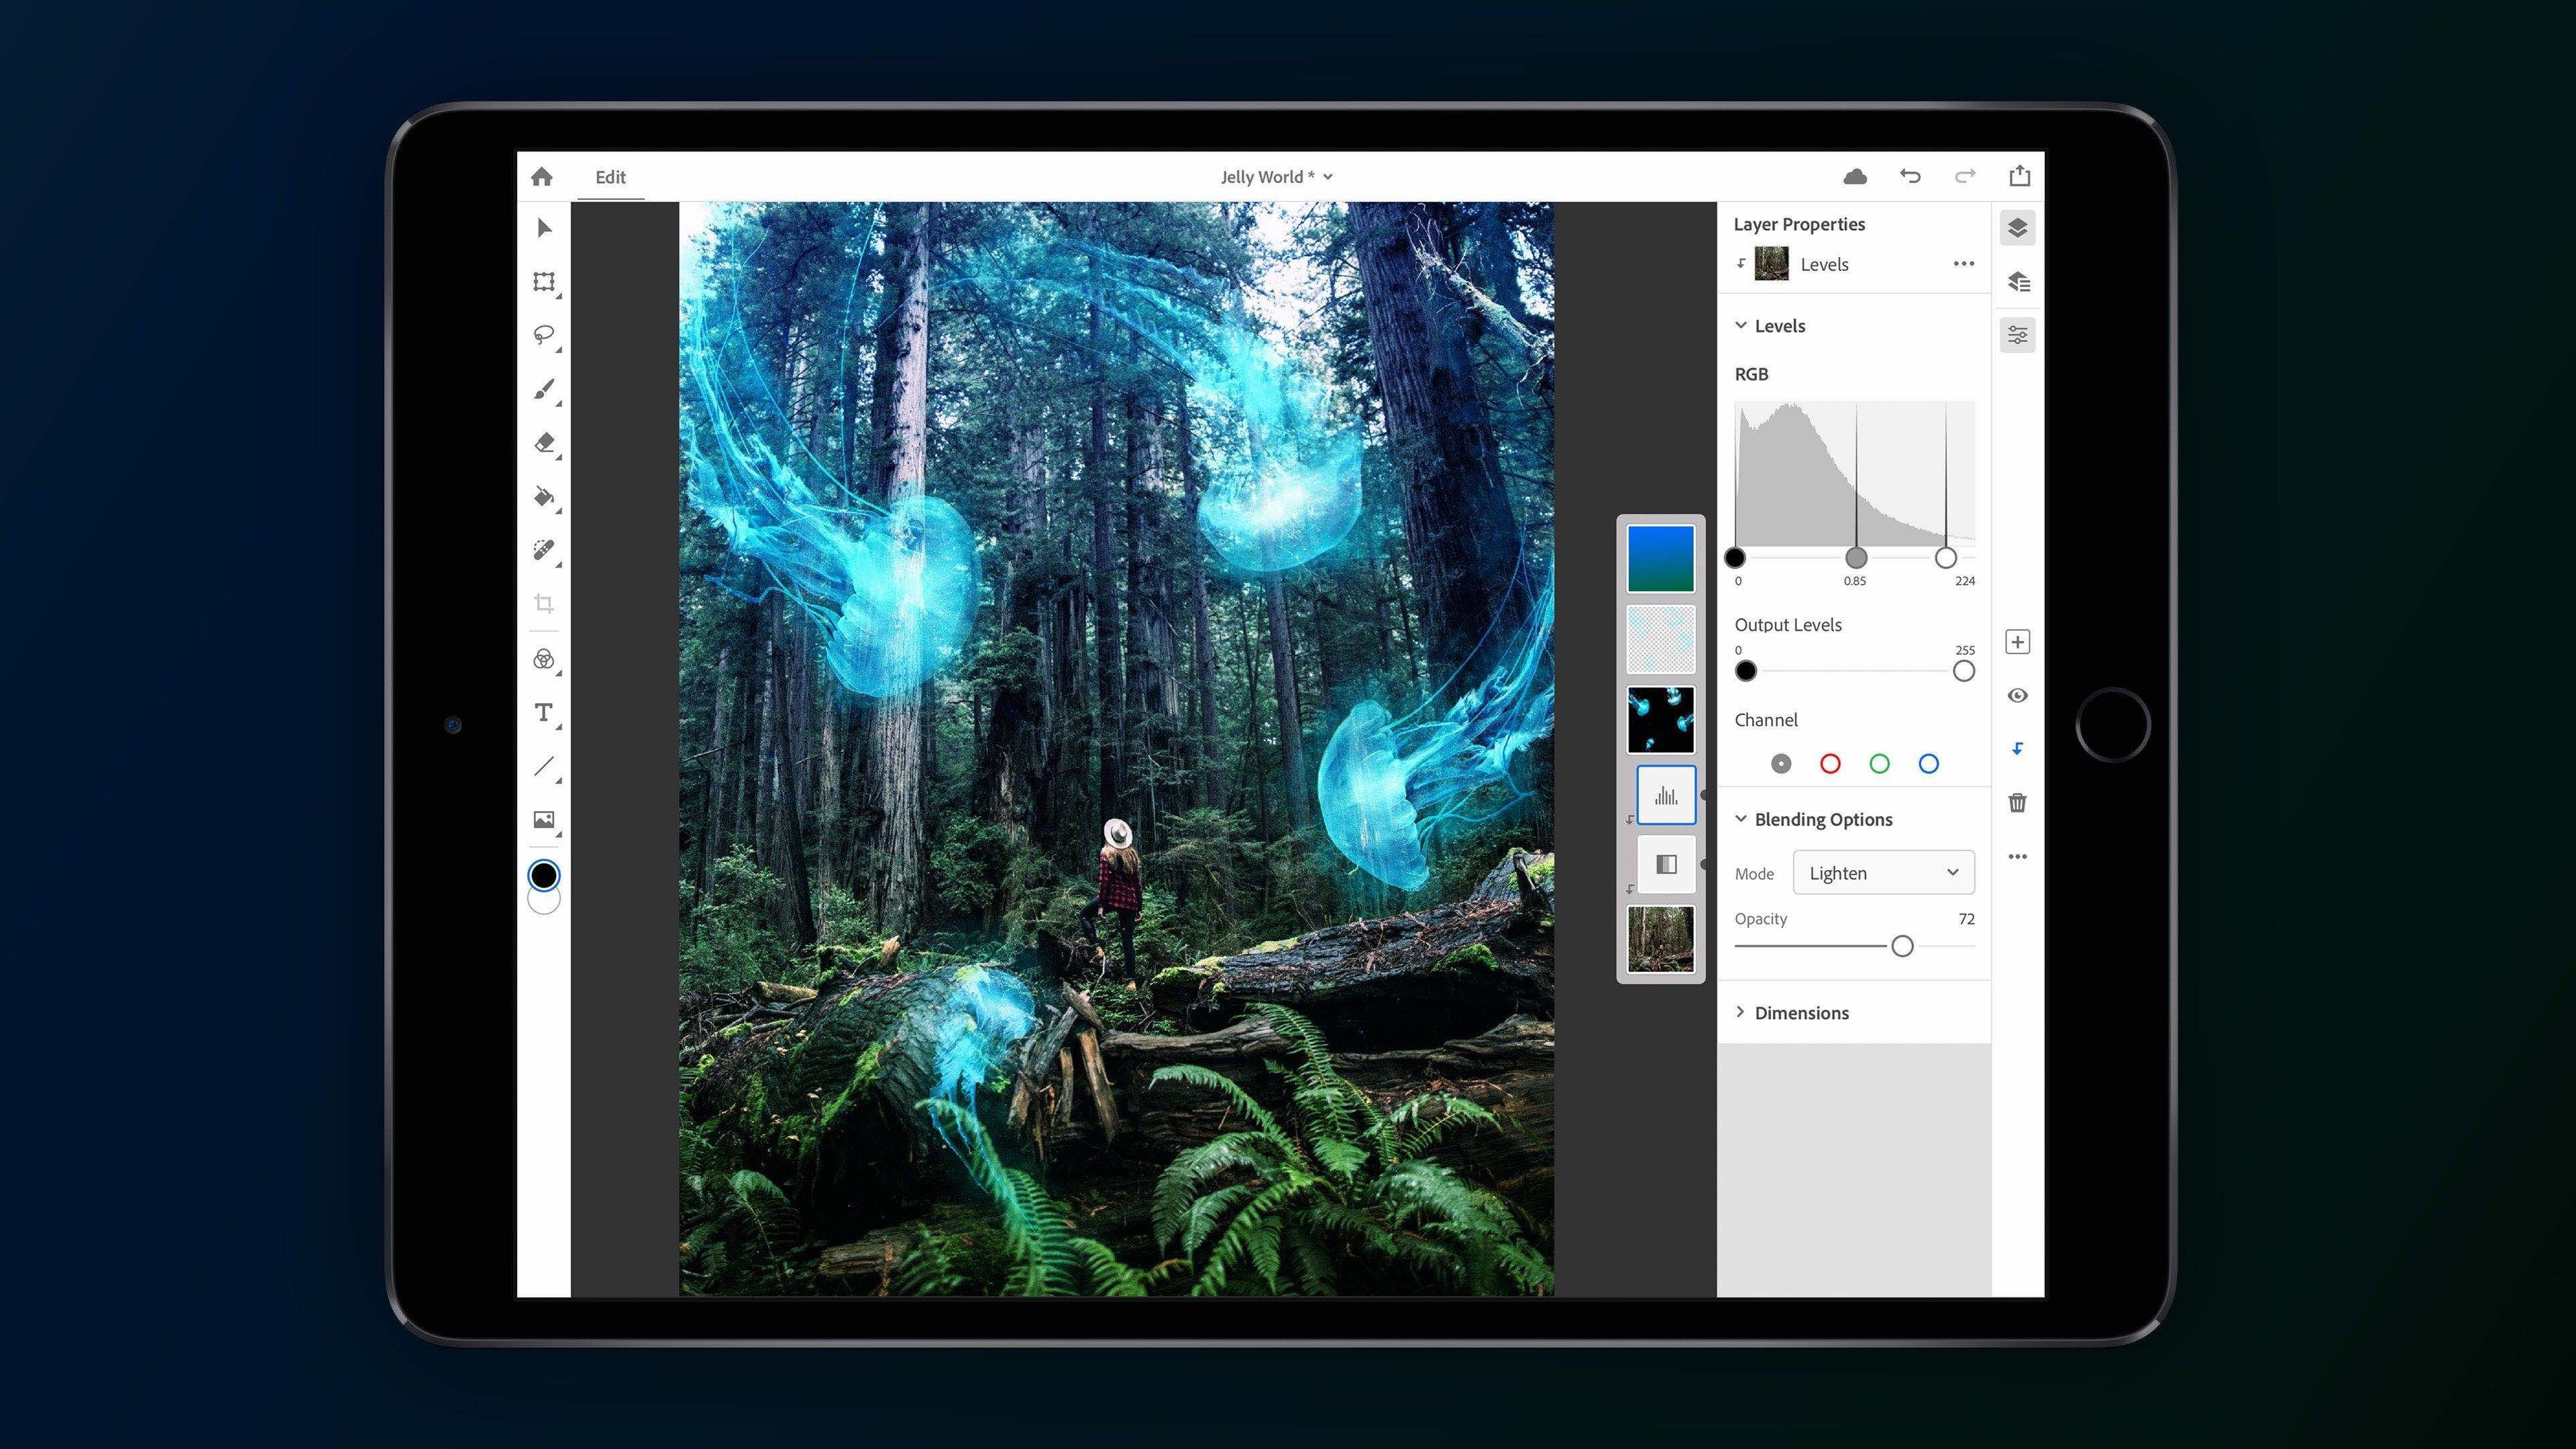 adobe announces full photoshop cc for ipad shipping 2019 syncs with desktop